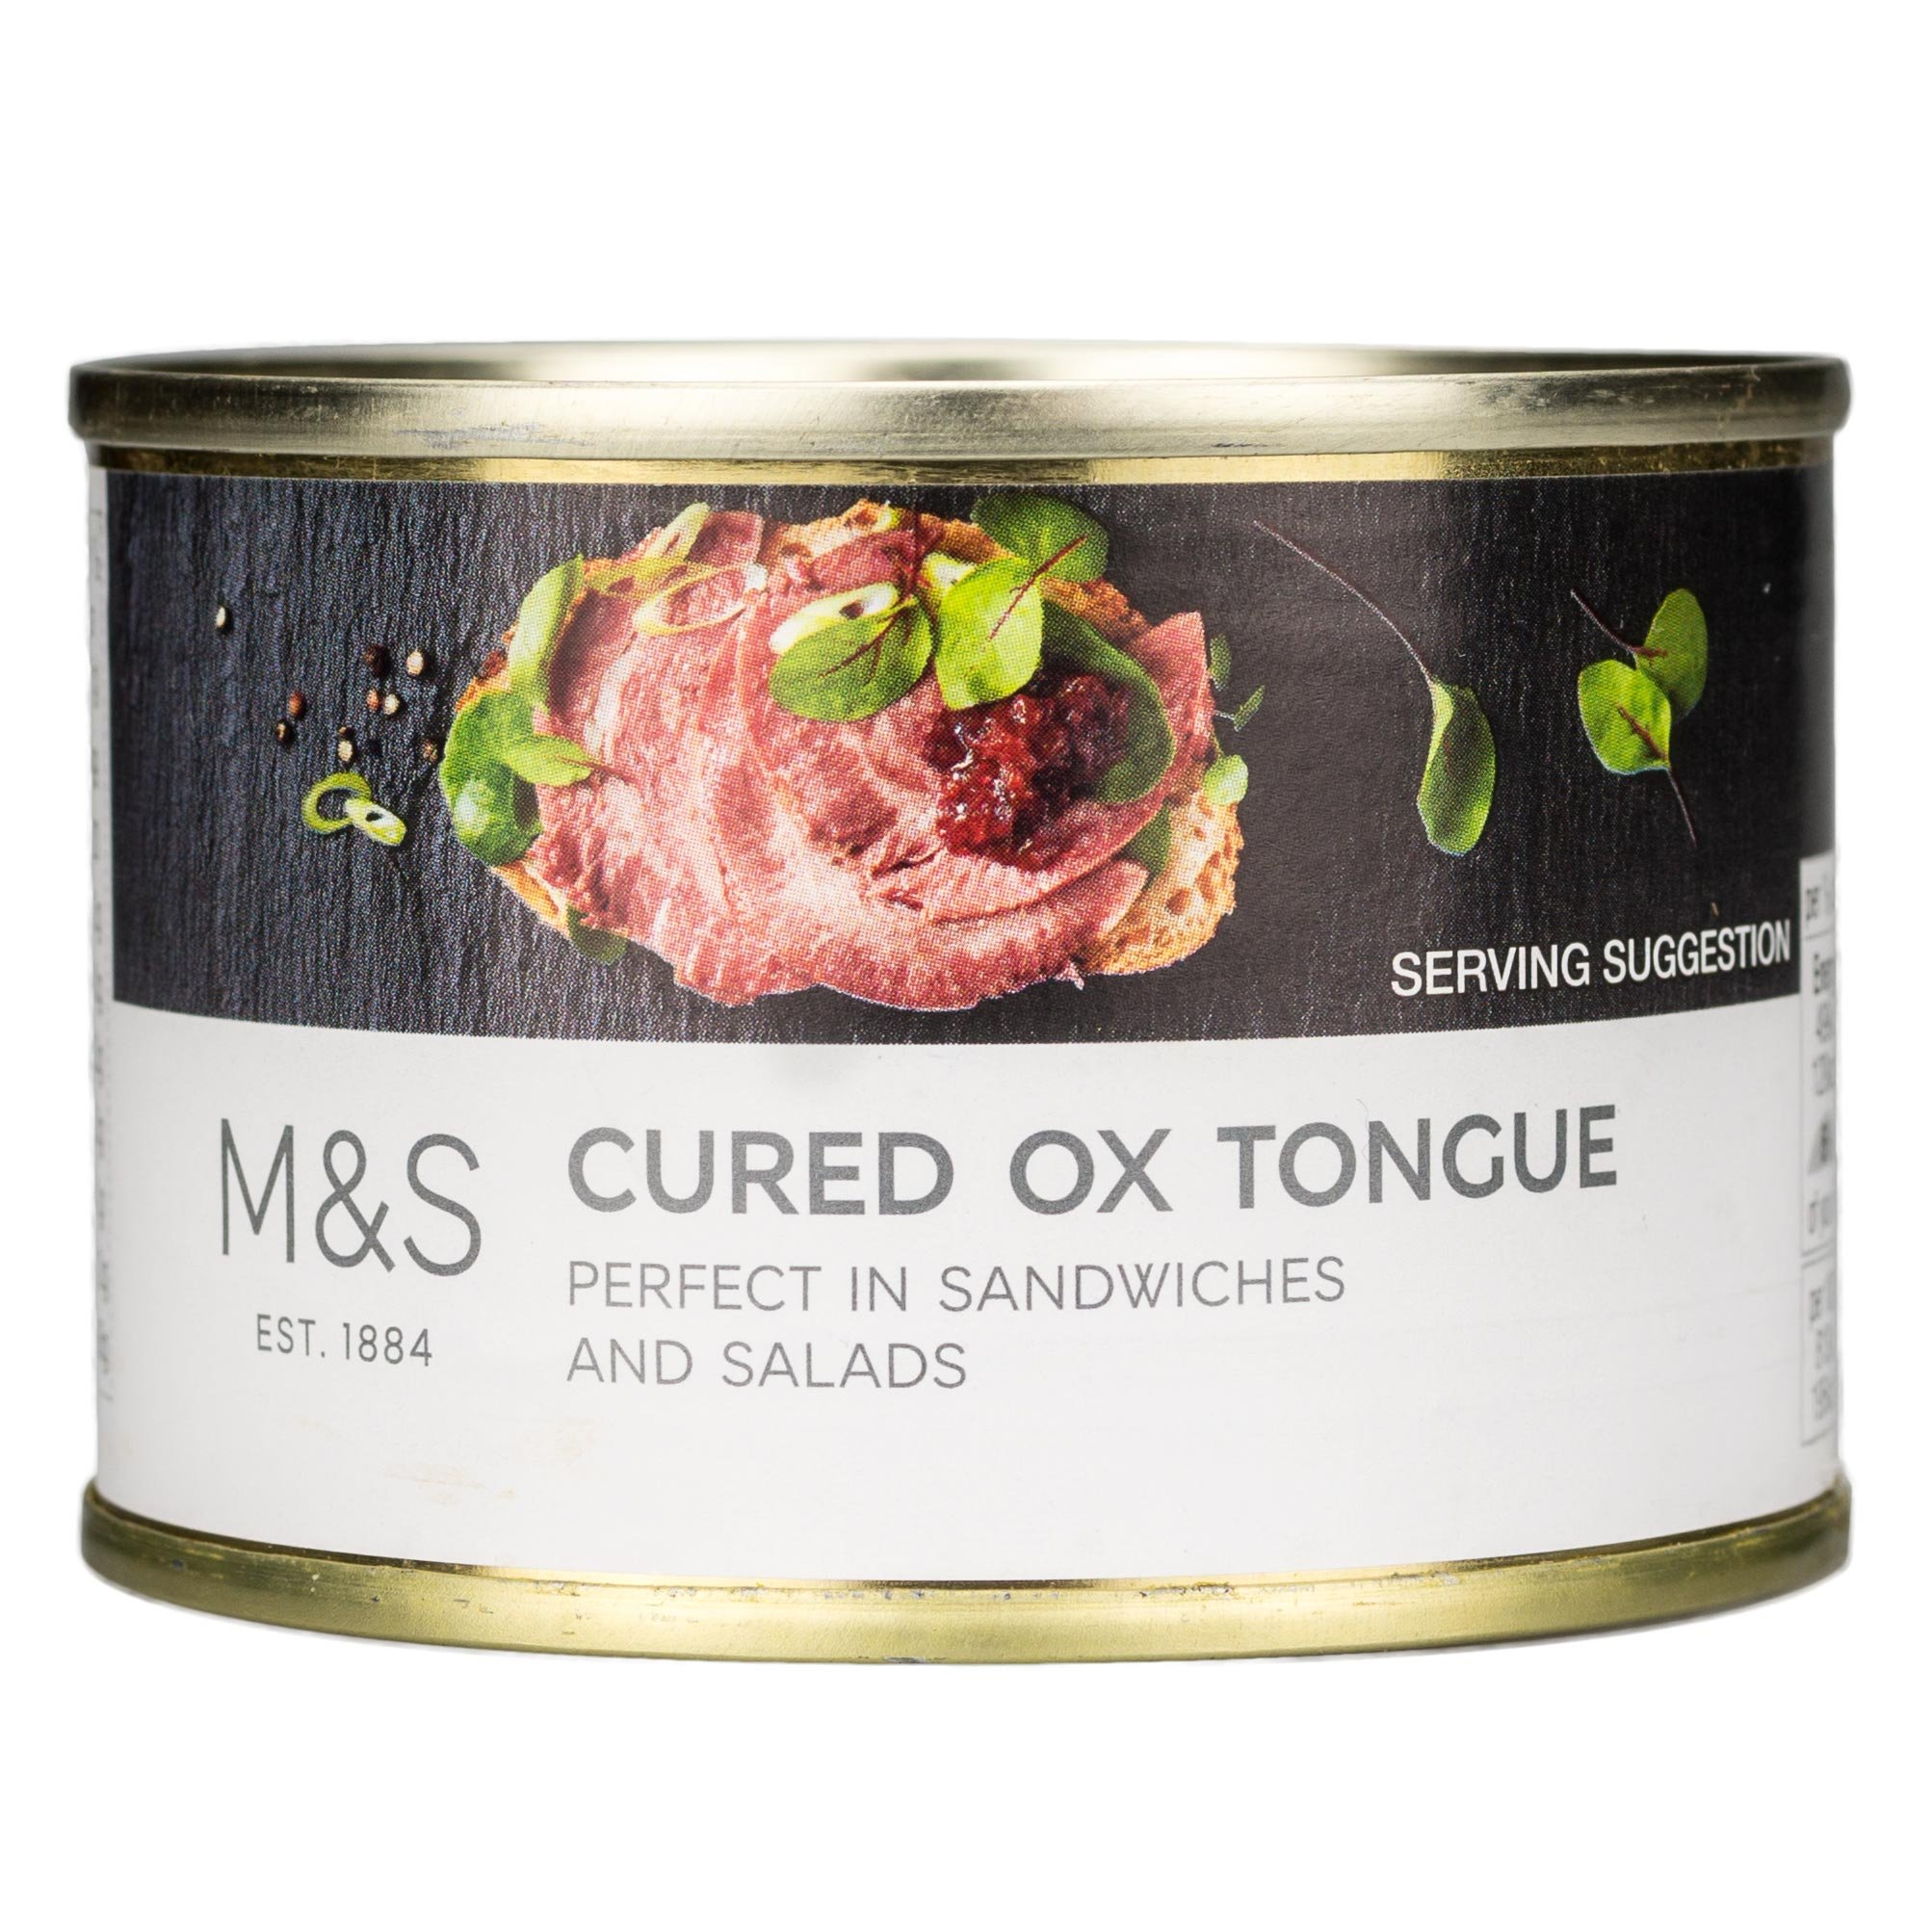 Marks & Spencer M&S Cured Ox Tongue 184g Made in the UK